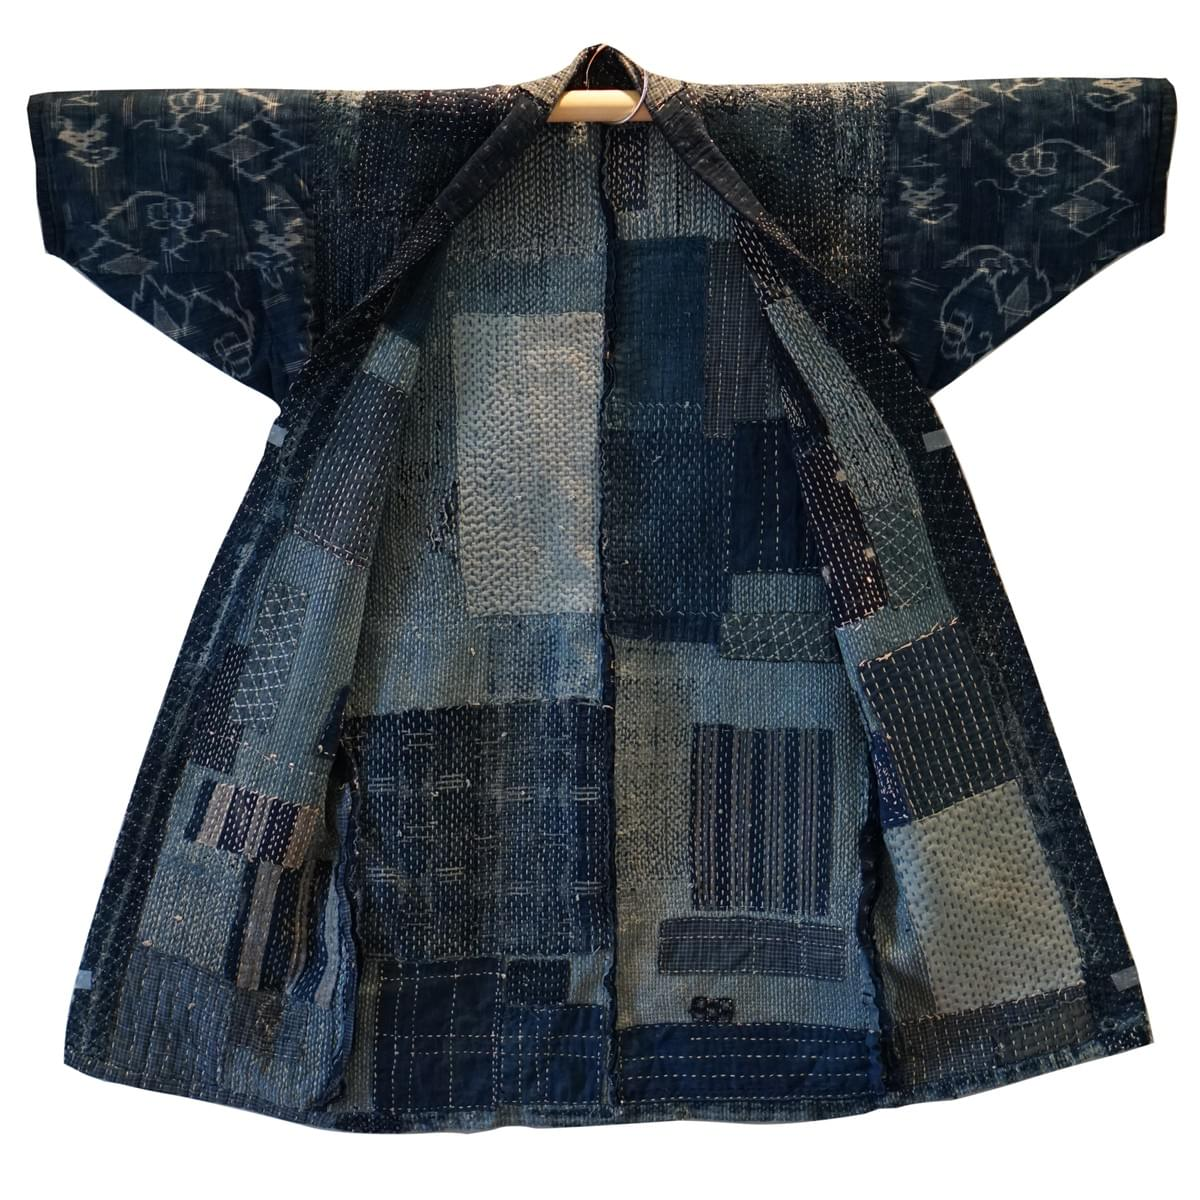 Sashiko Boro Jacket Cultural Appropriation